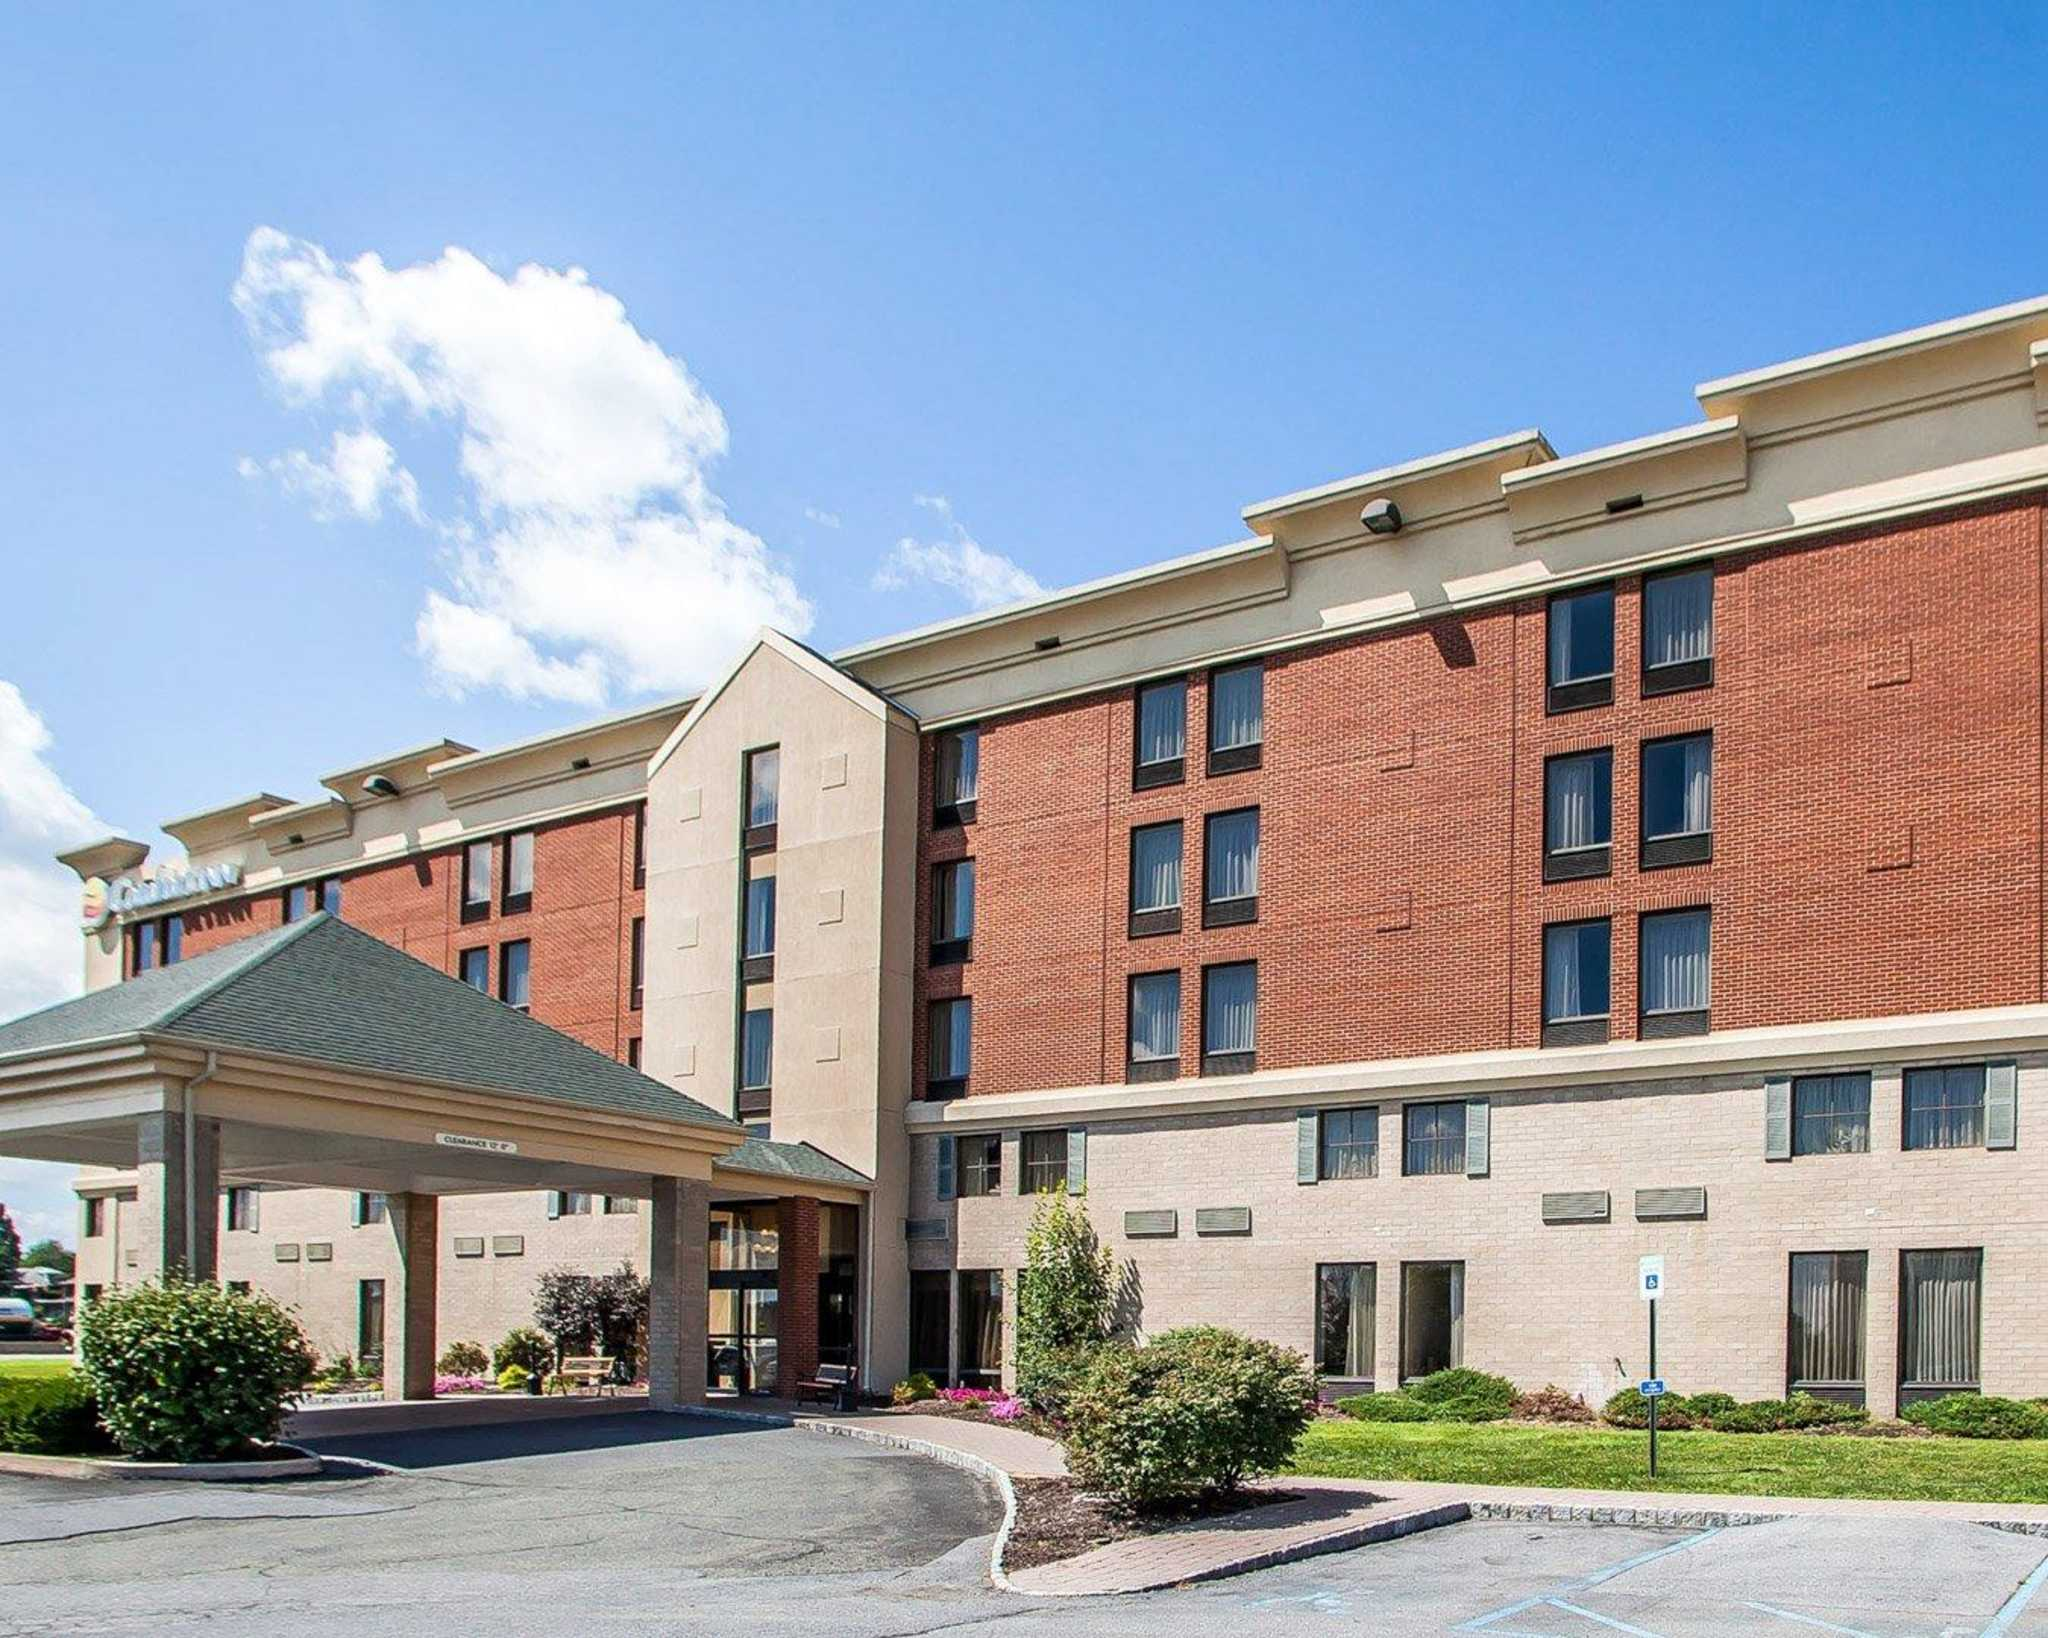 Comfort Inn Lehigh Valley West image 23